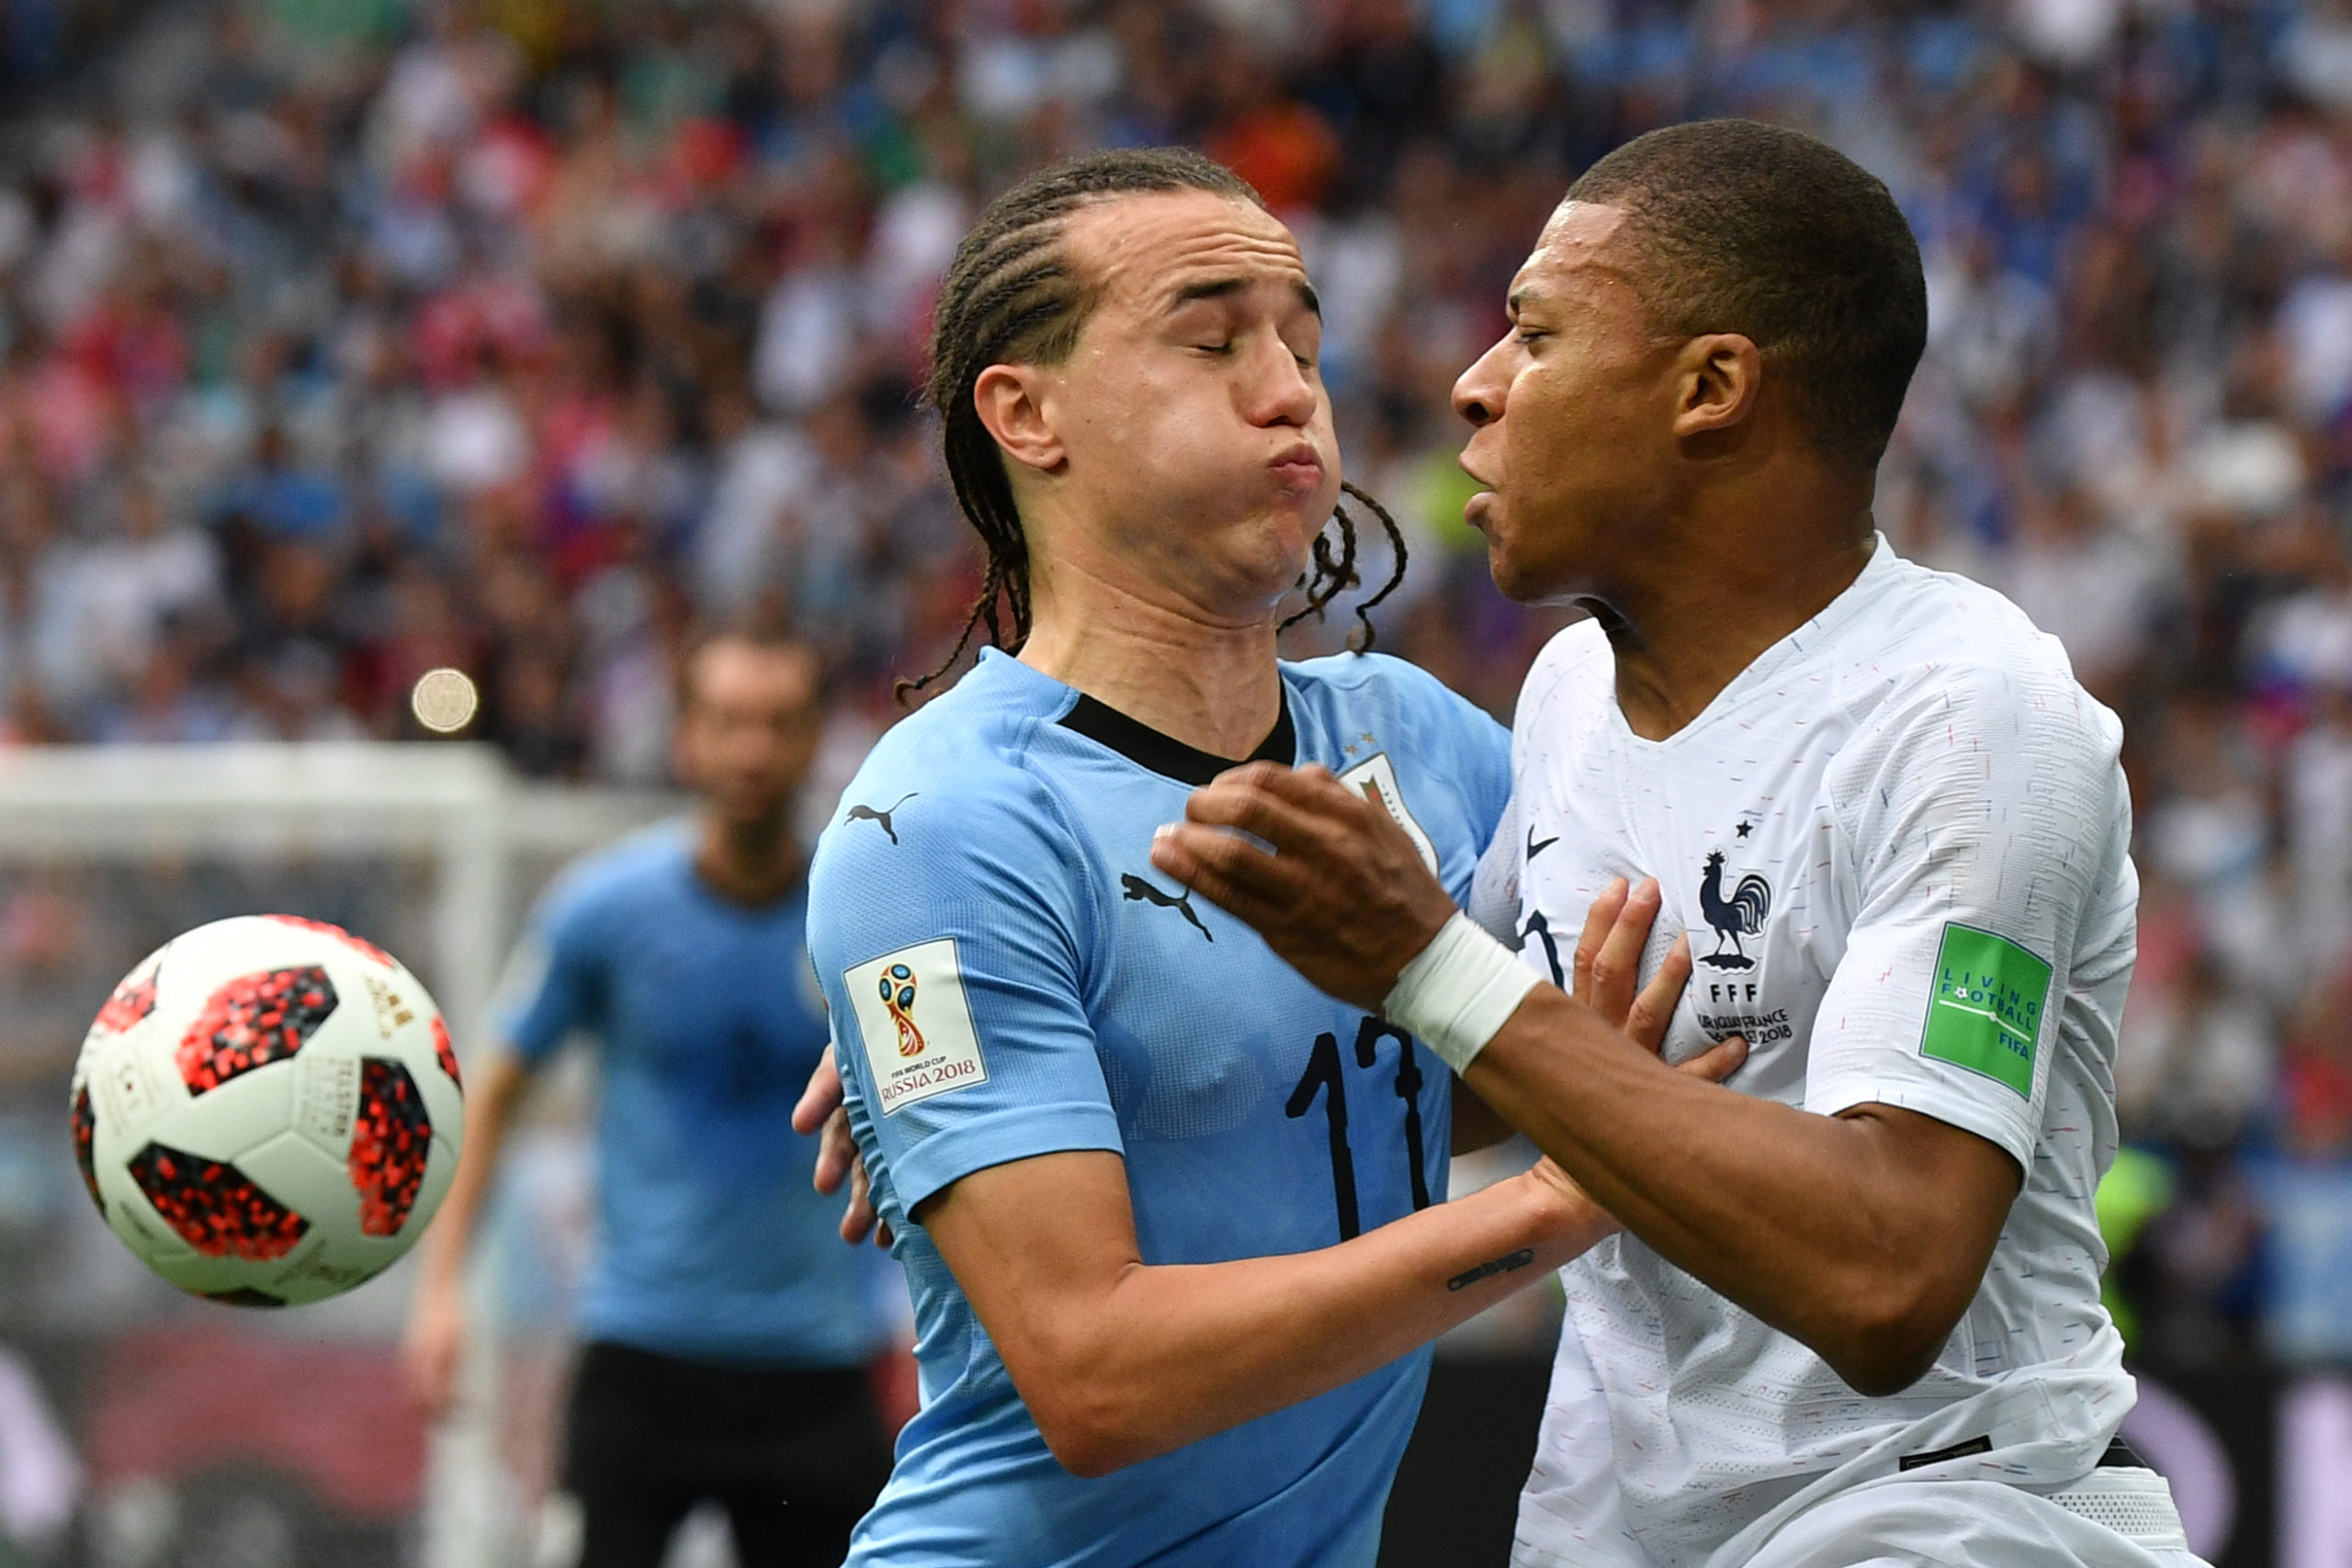 Laxalt vies with France's Kylian Mbappe in 2018